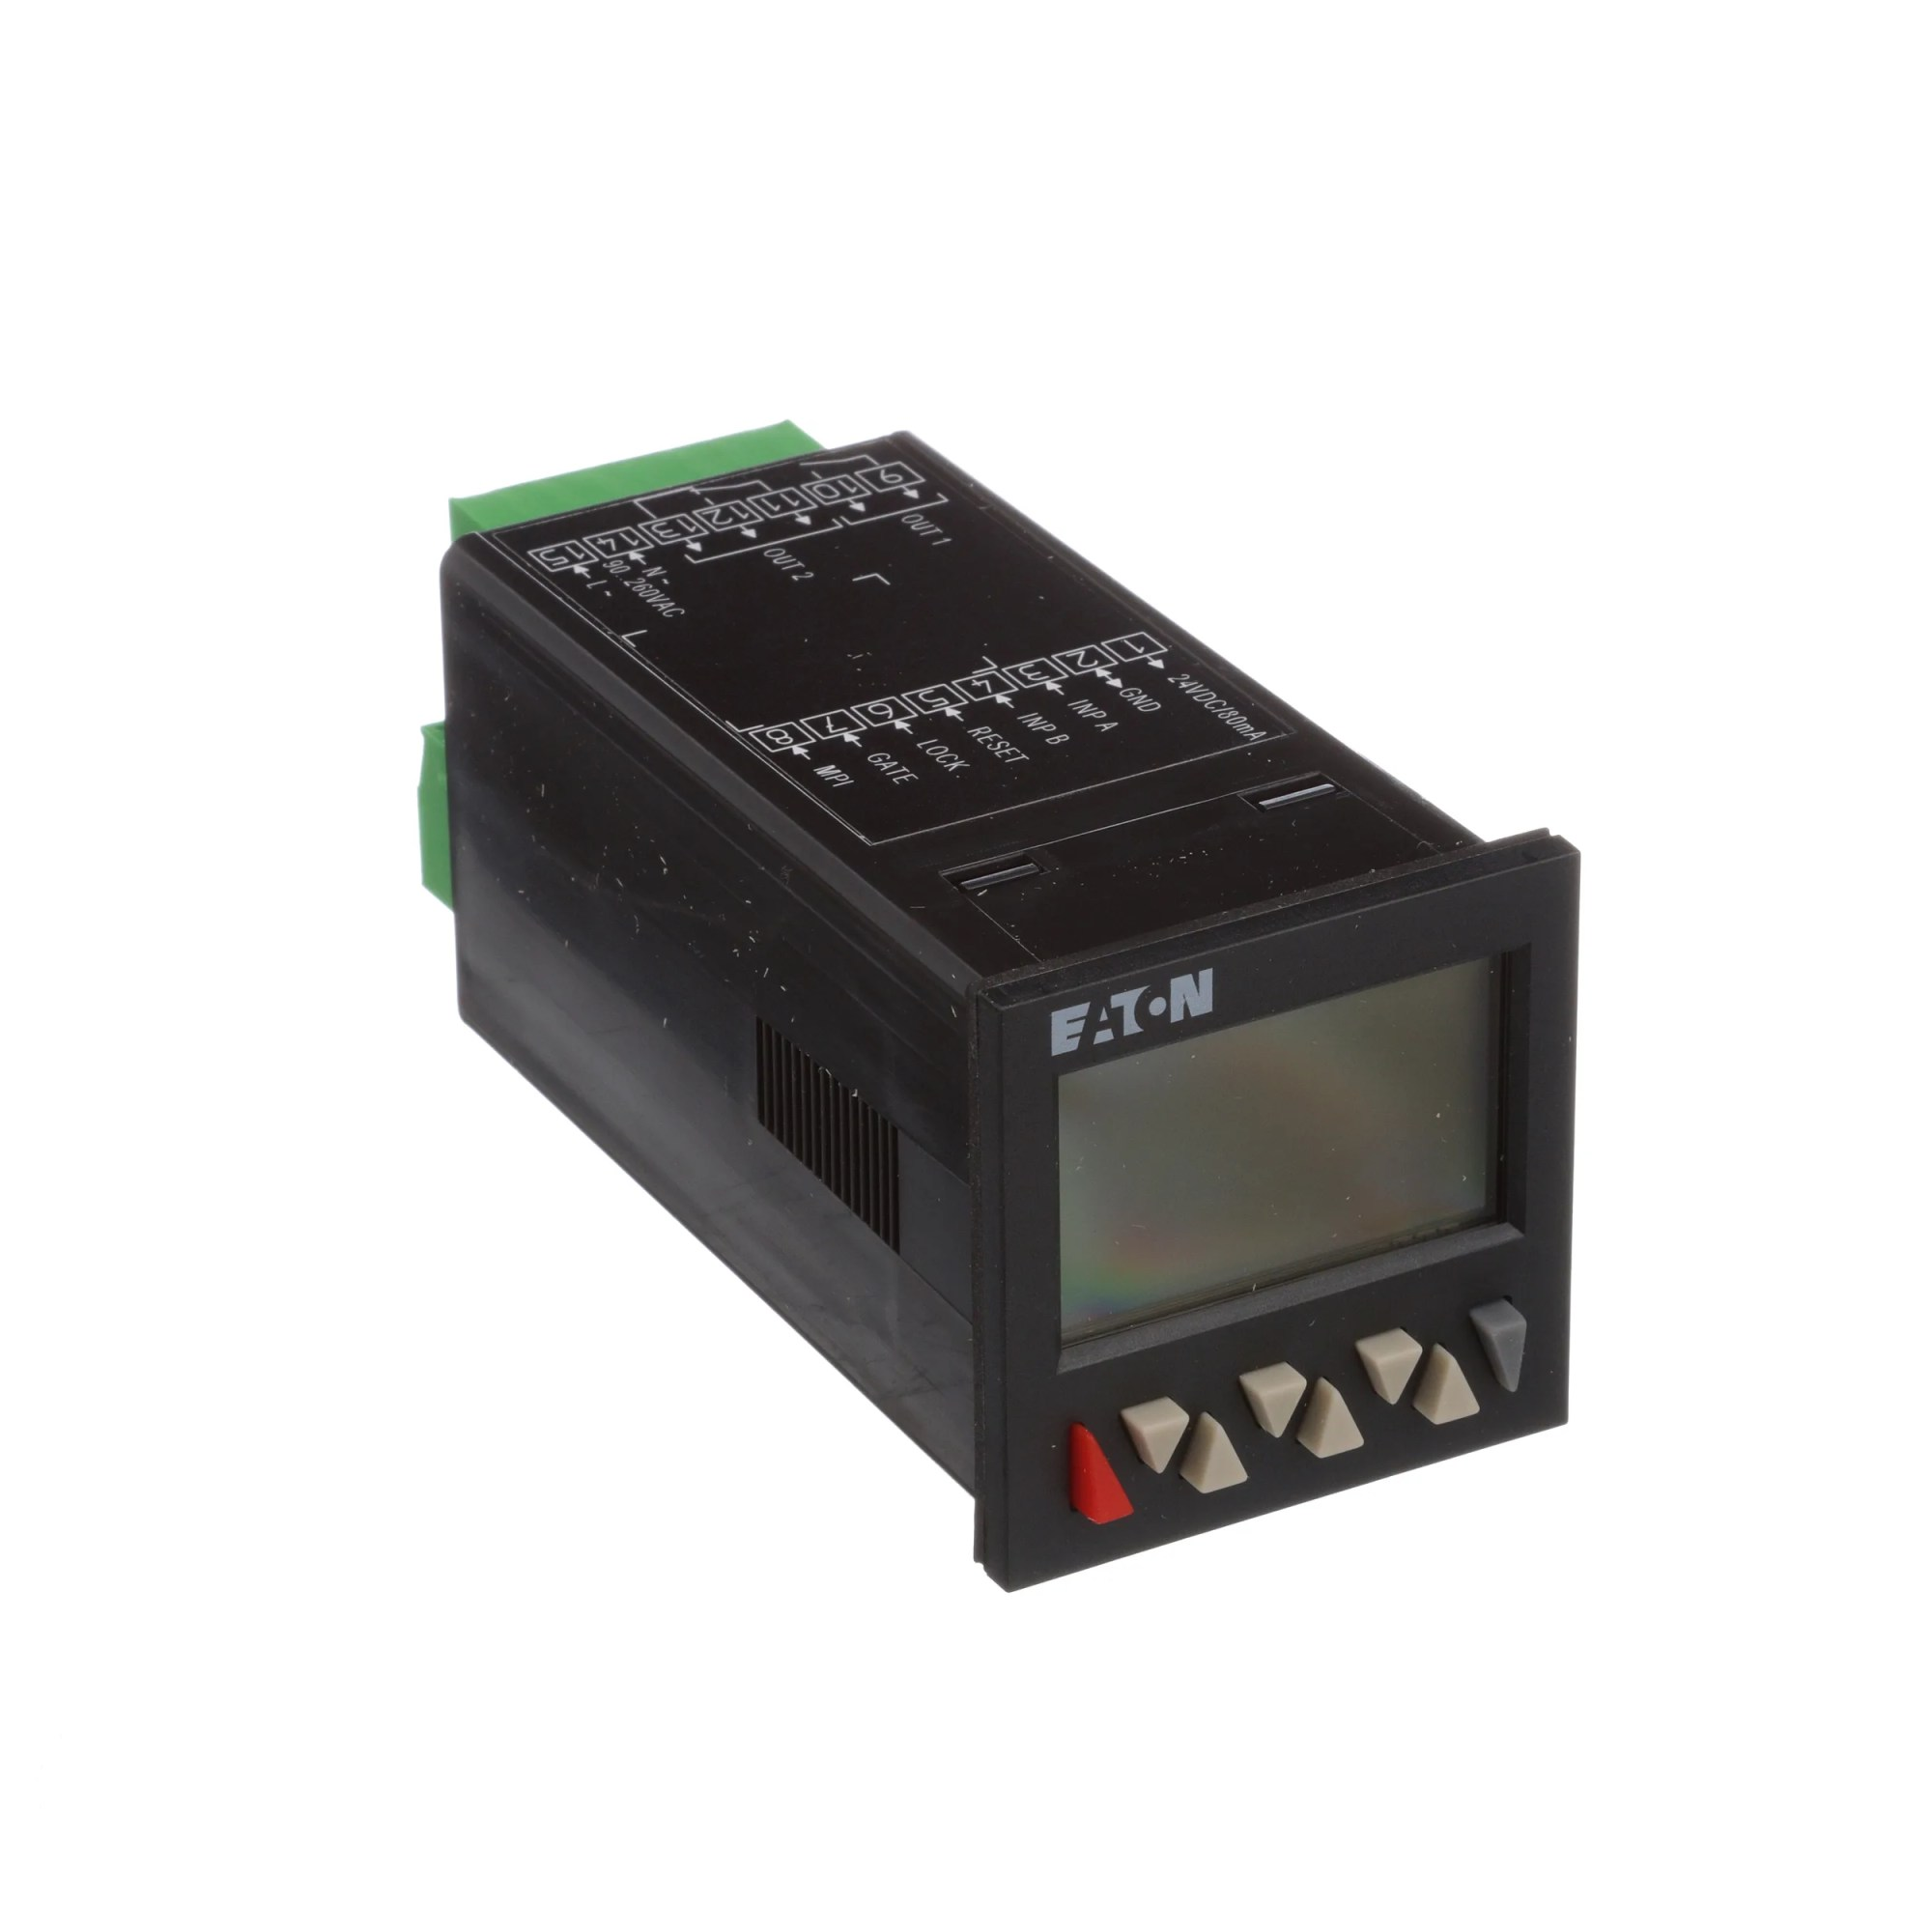 hight resolution of eaton cutler hammer e5 648 c2421 counter preset 1 16 din 2 line lcd 2 presets 90 260vac allied electronics automation